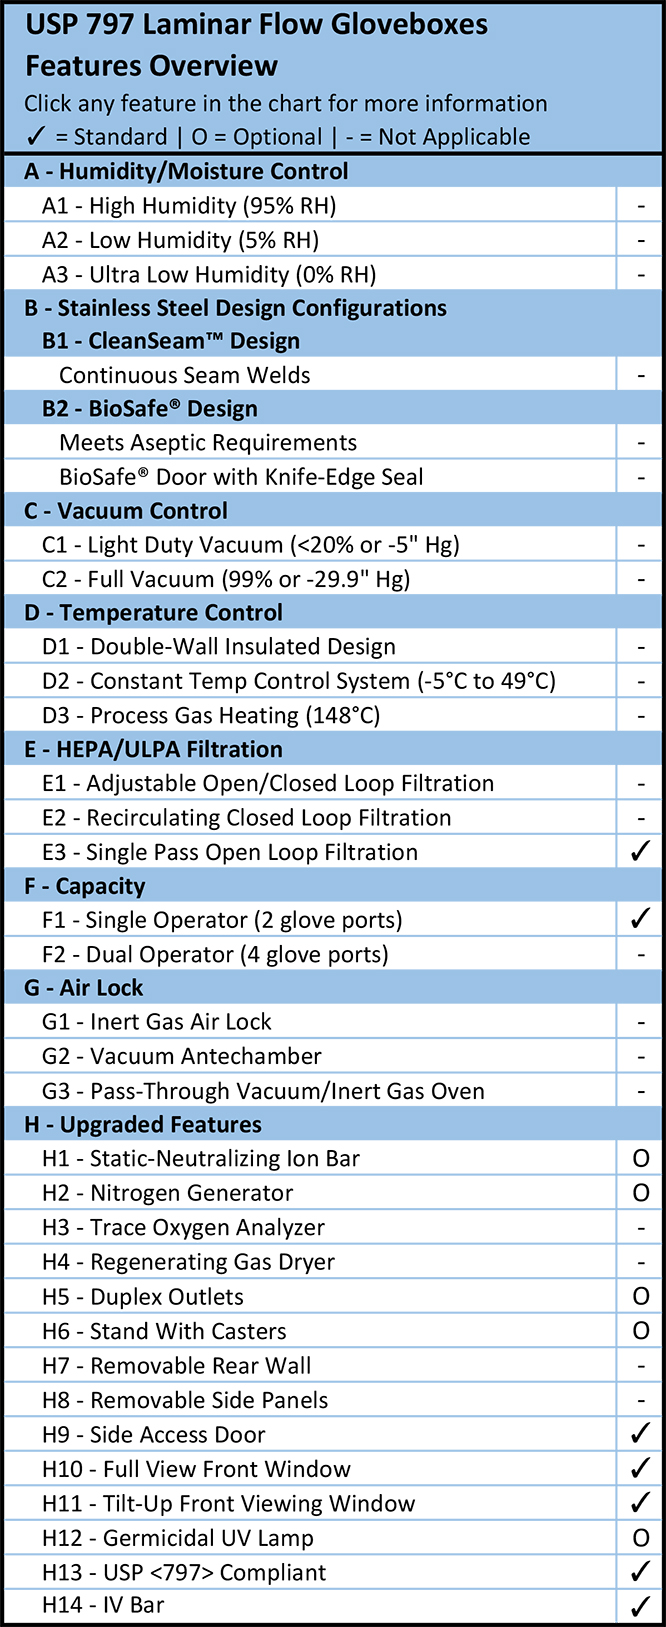 USP 797 Laminar Flow Gloveboxes Features Overview